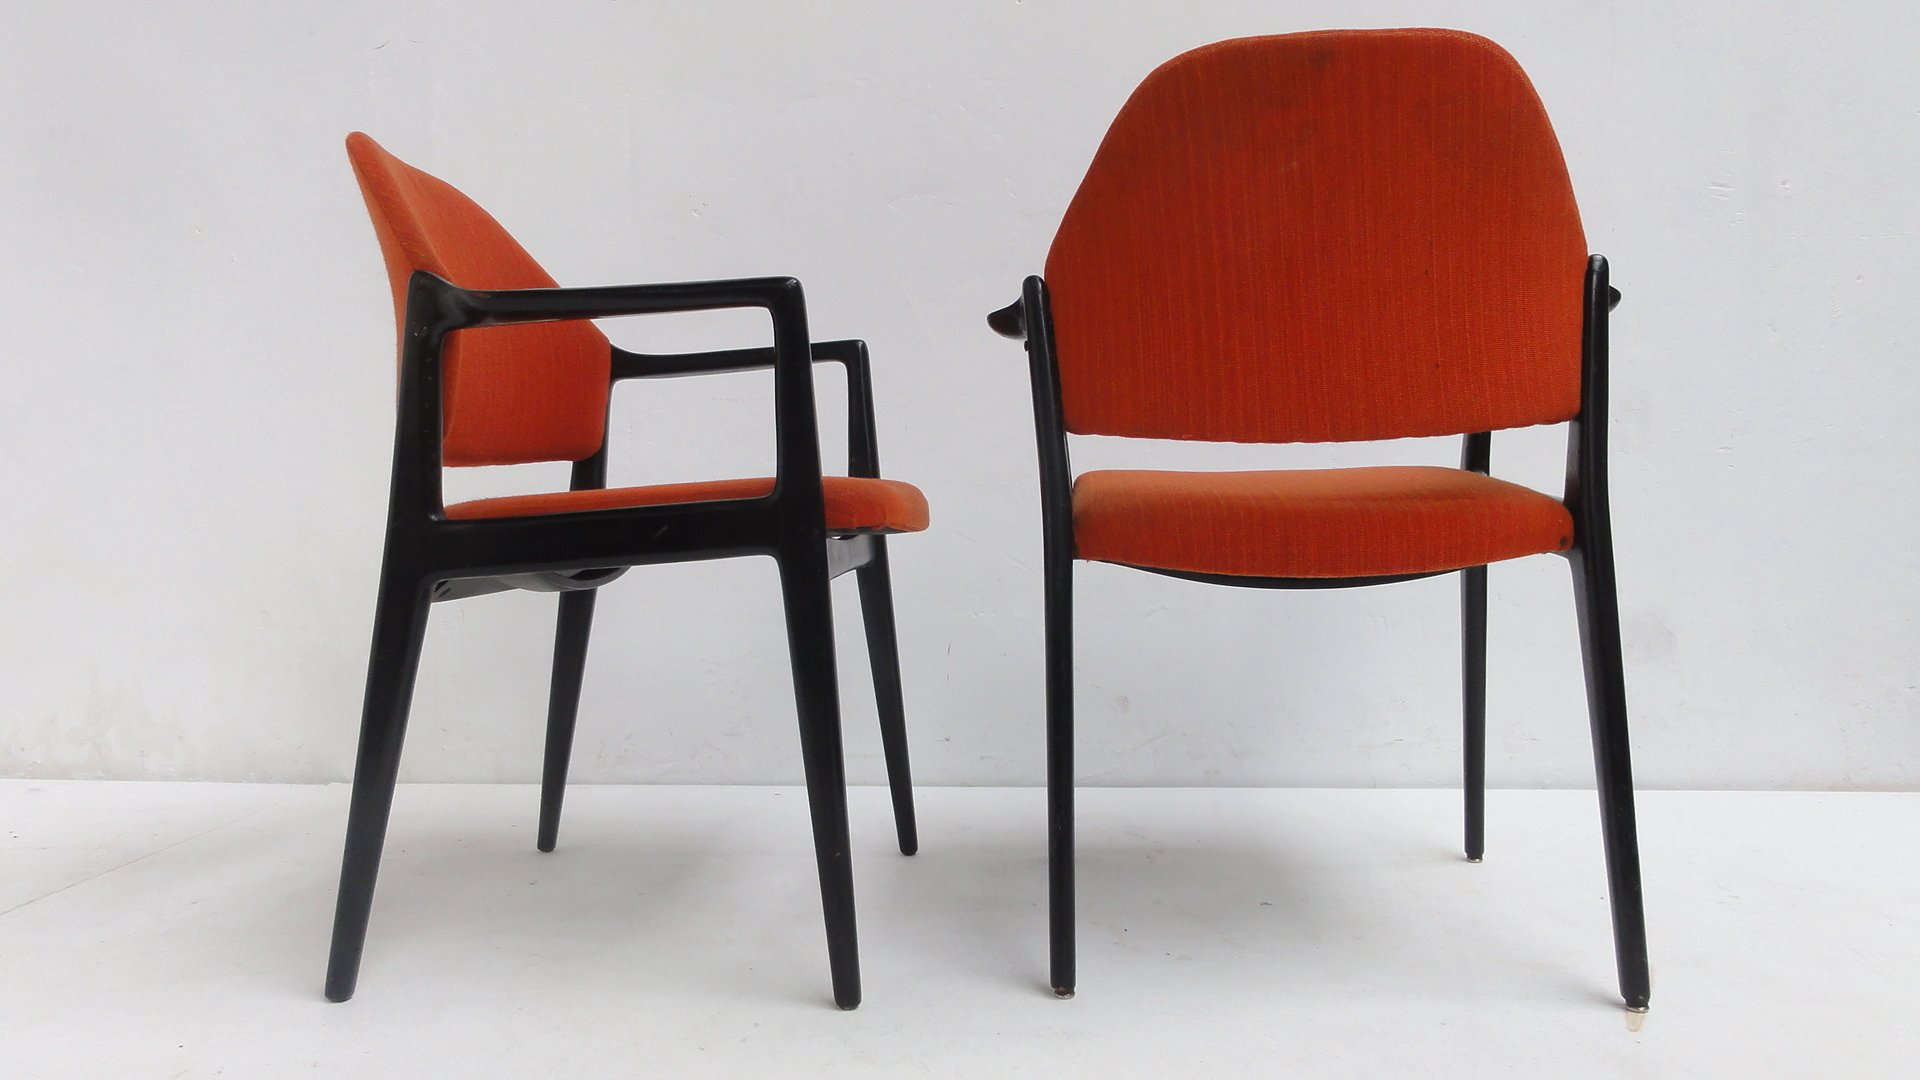 Orange Dining Chairs From WIlkhahn 1950s Set Of 2 For